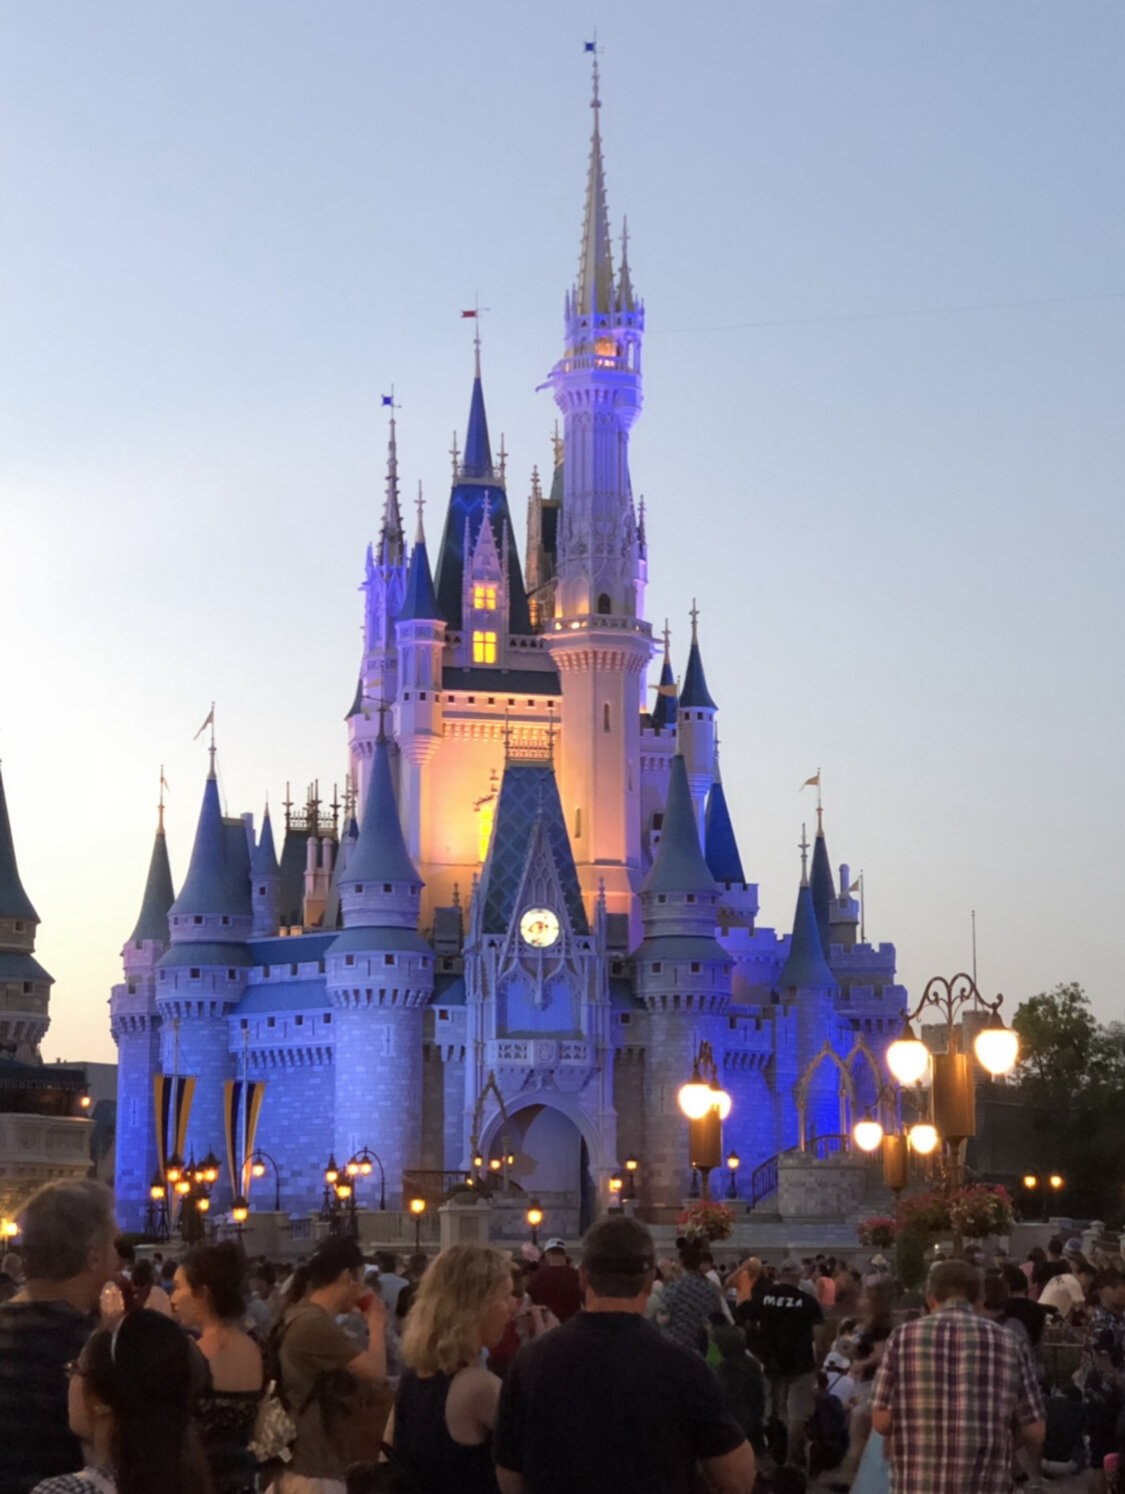 Cinderella's castle at lit up at night at the Magic Kingdom in Disney World.